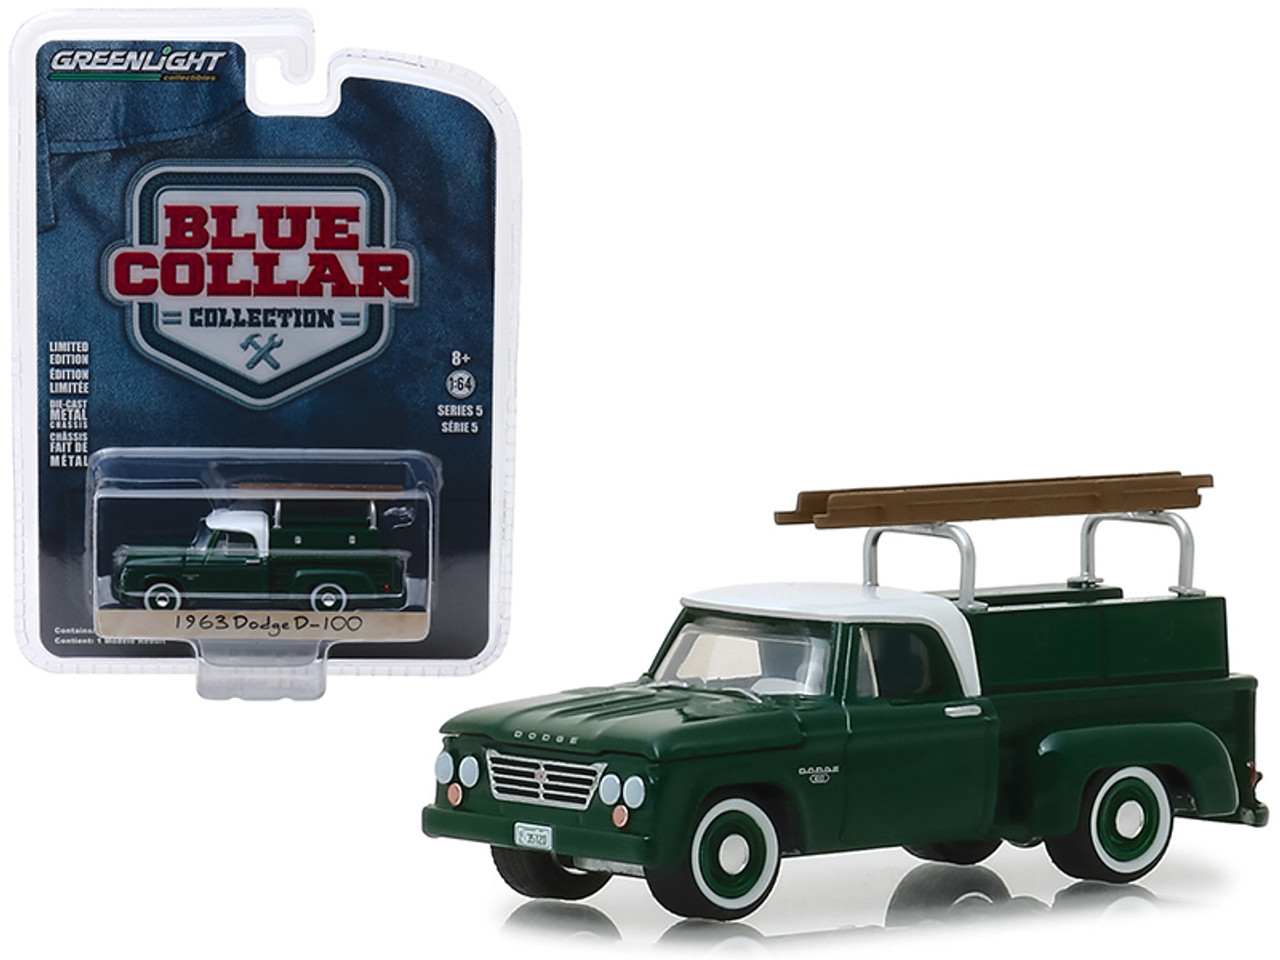 1963 Dodge D-100 With Toolbox Pickup Truck Country Roads Series 14 1//64 Model